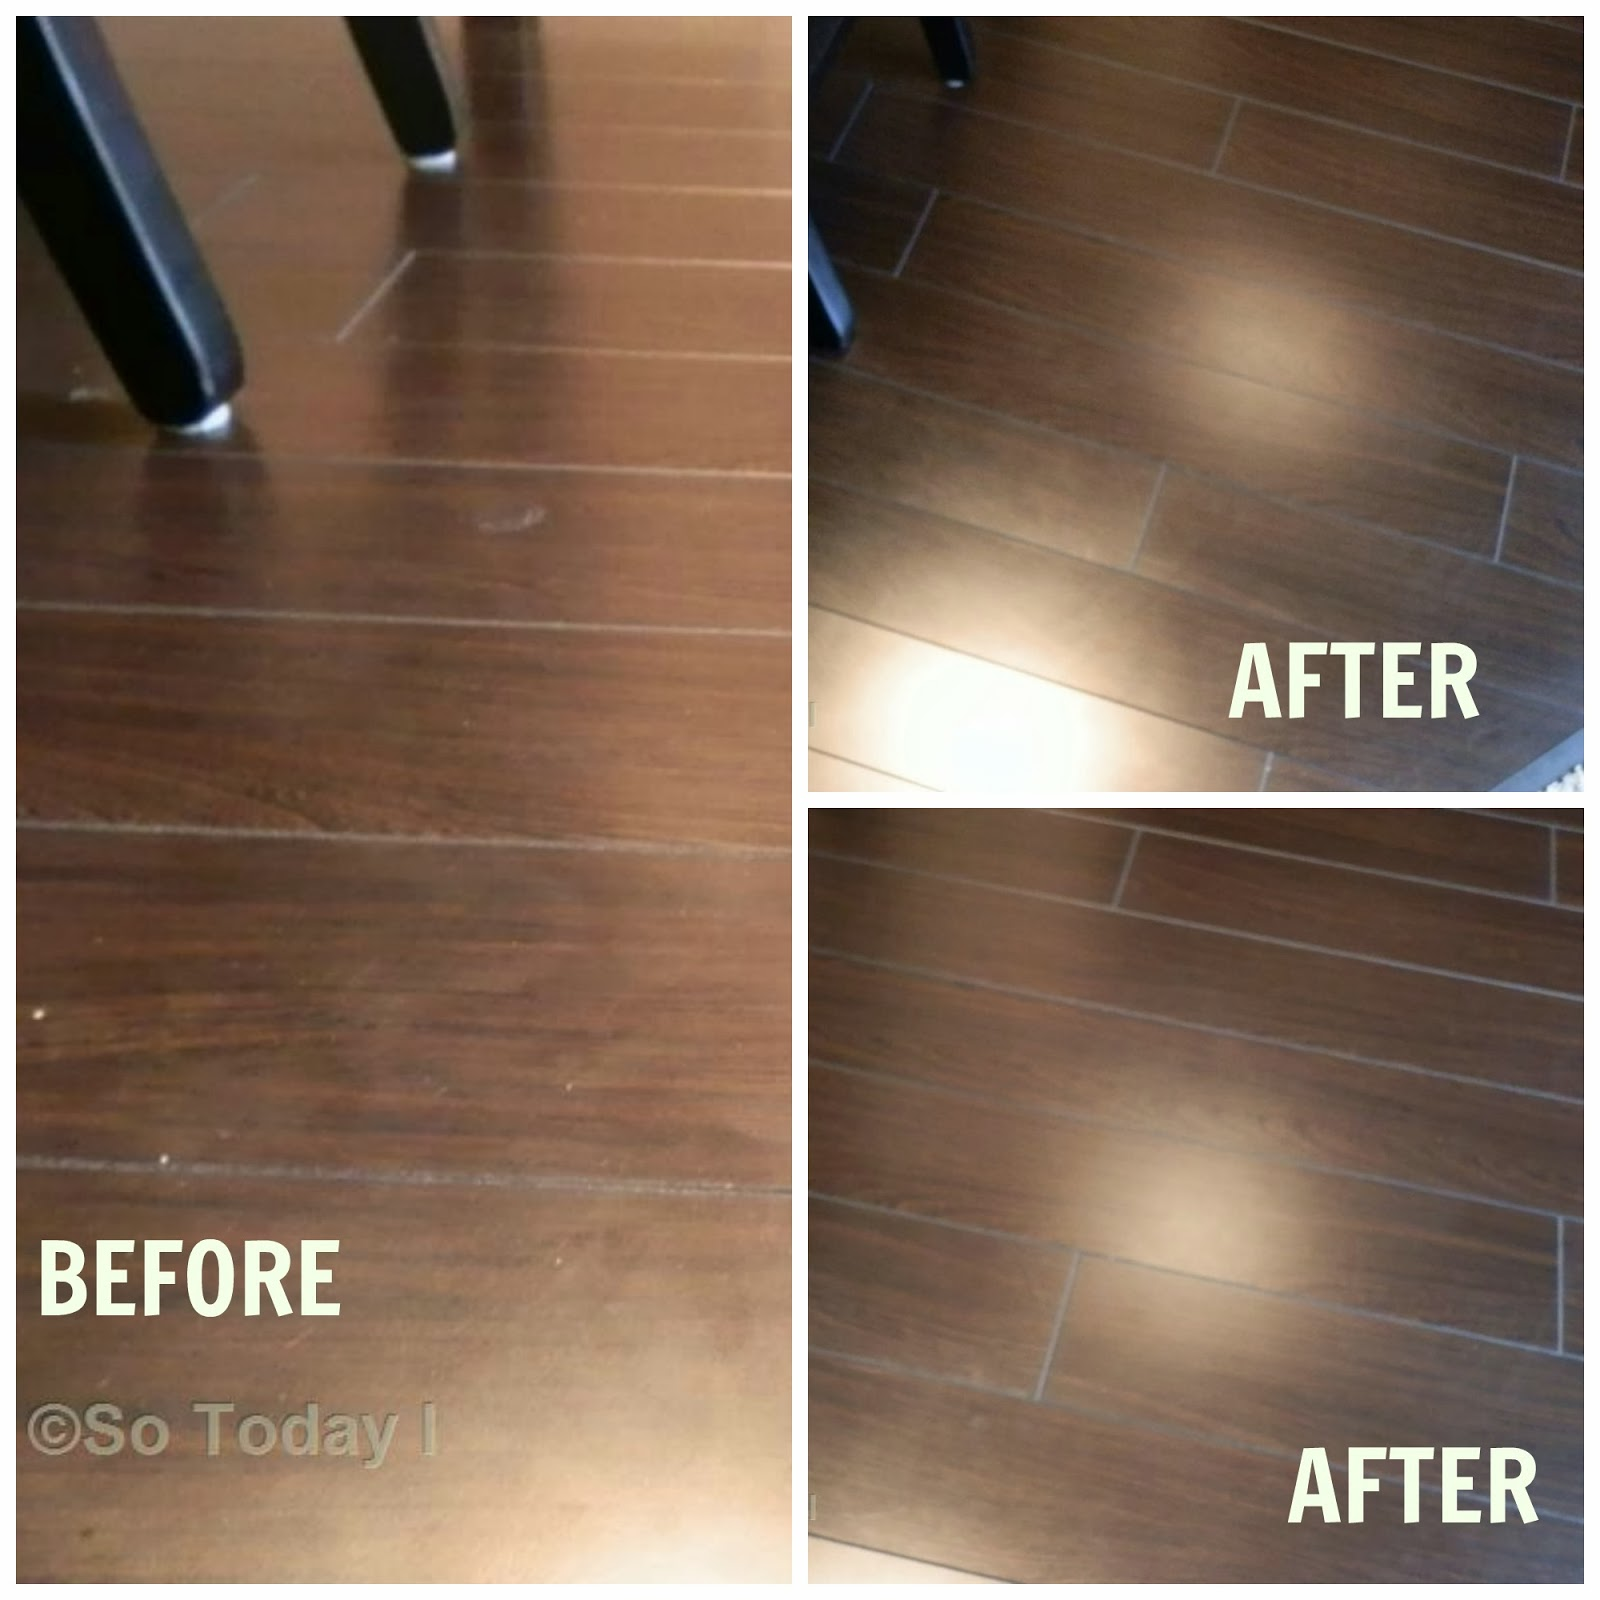 Tile floor shine products image collections tile flooring design best way to clean shiny floor tiles keeping my dark laminate floors smudge free the easy dailygadgetfo Choice Image